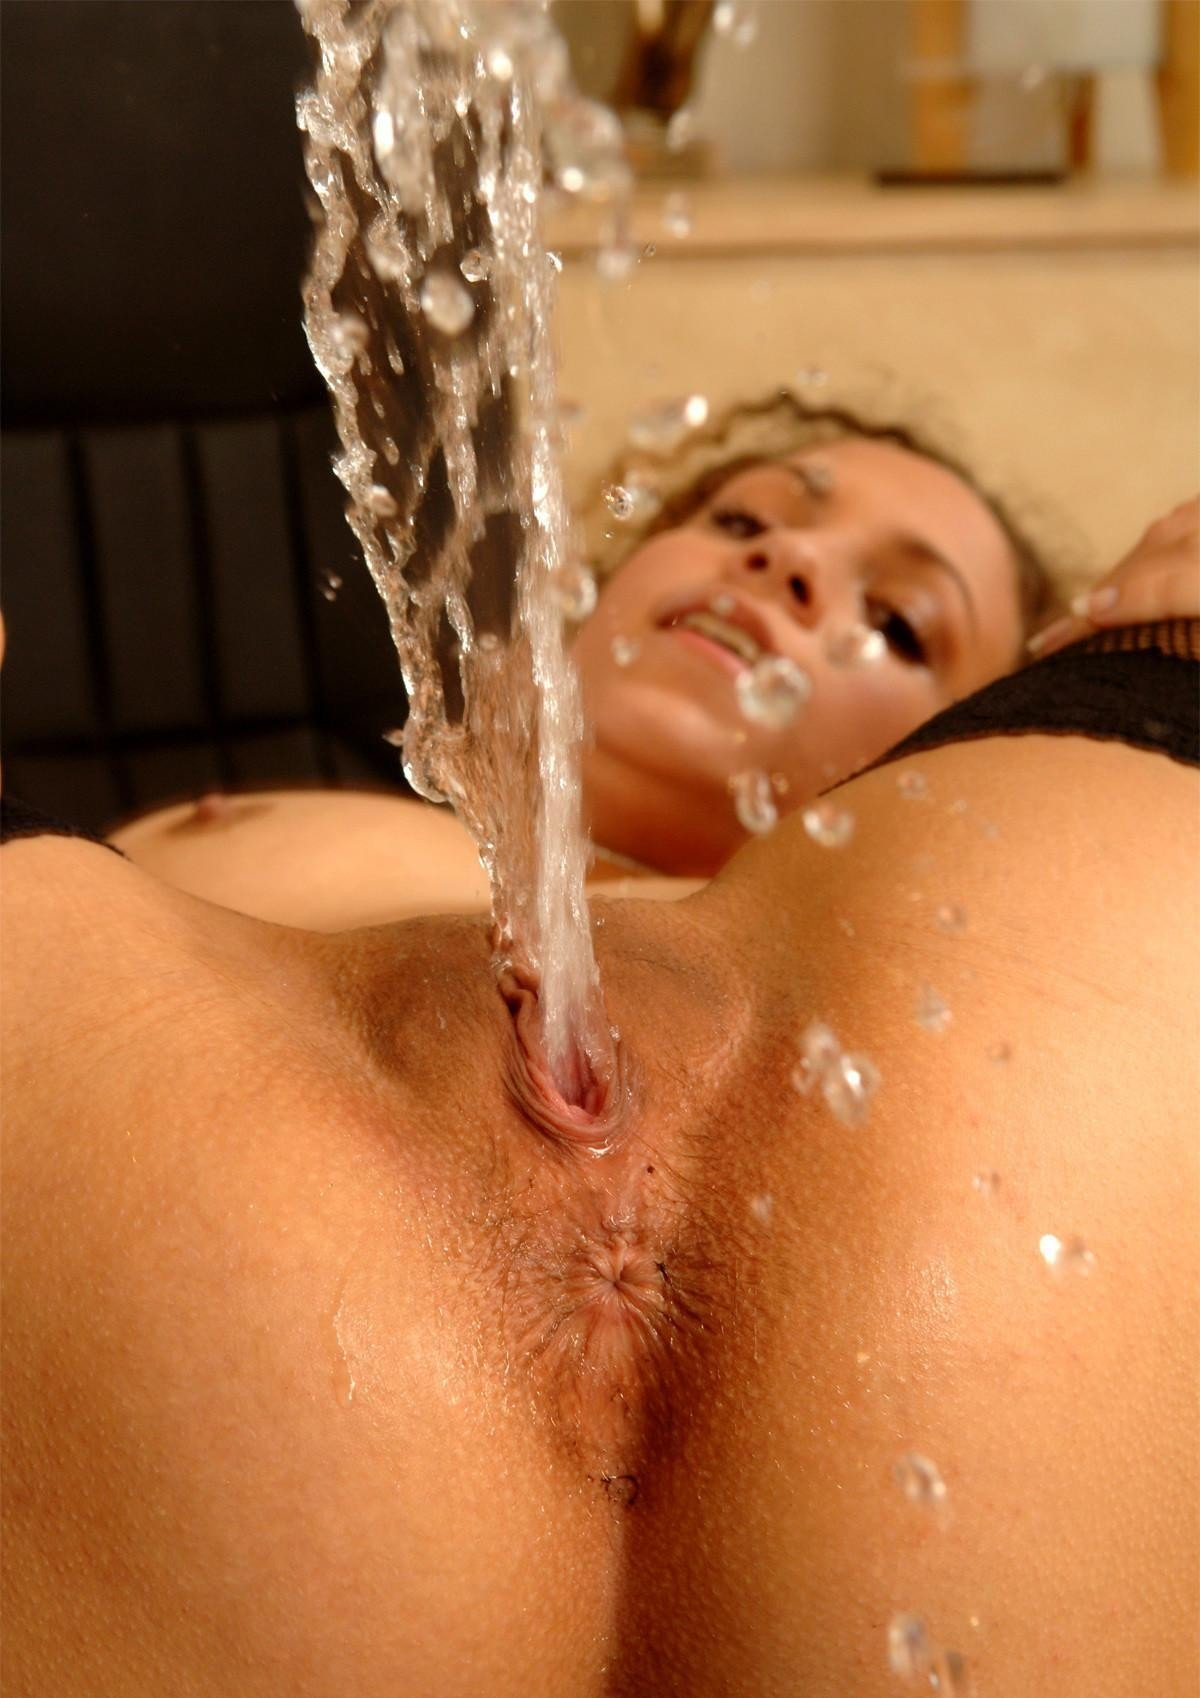 woman-squirting-orgasm-pictures